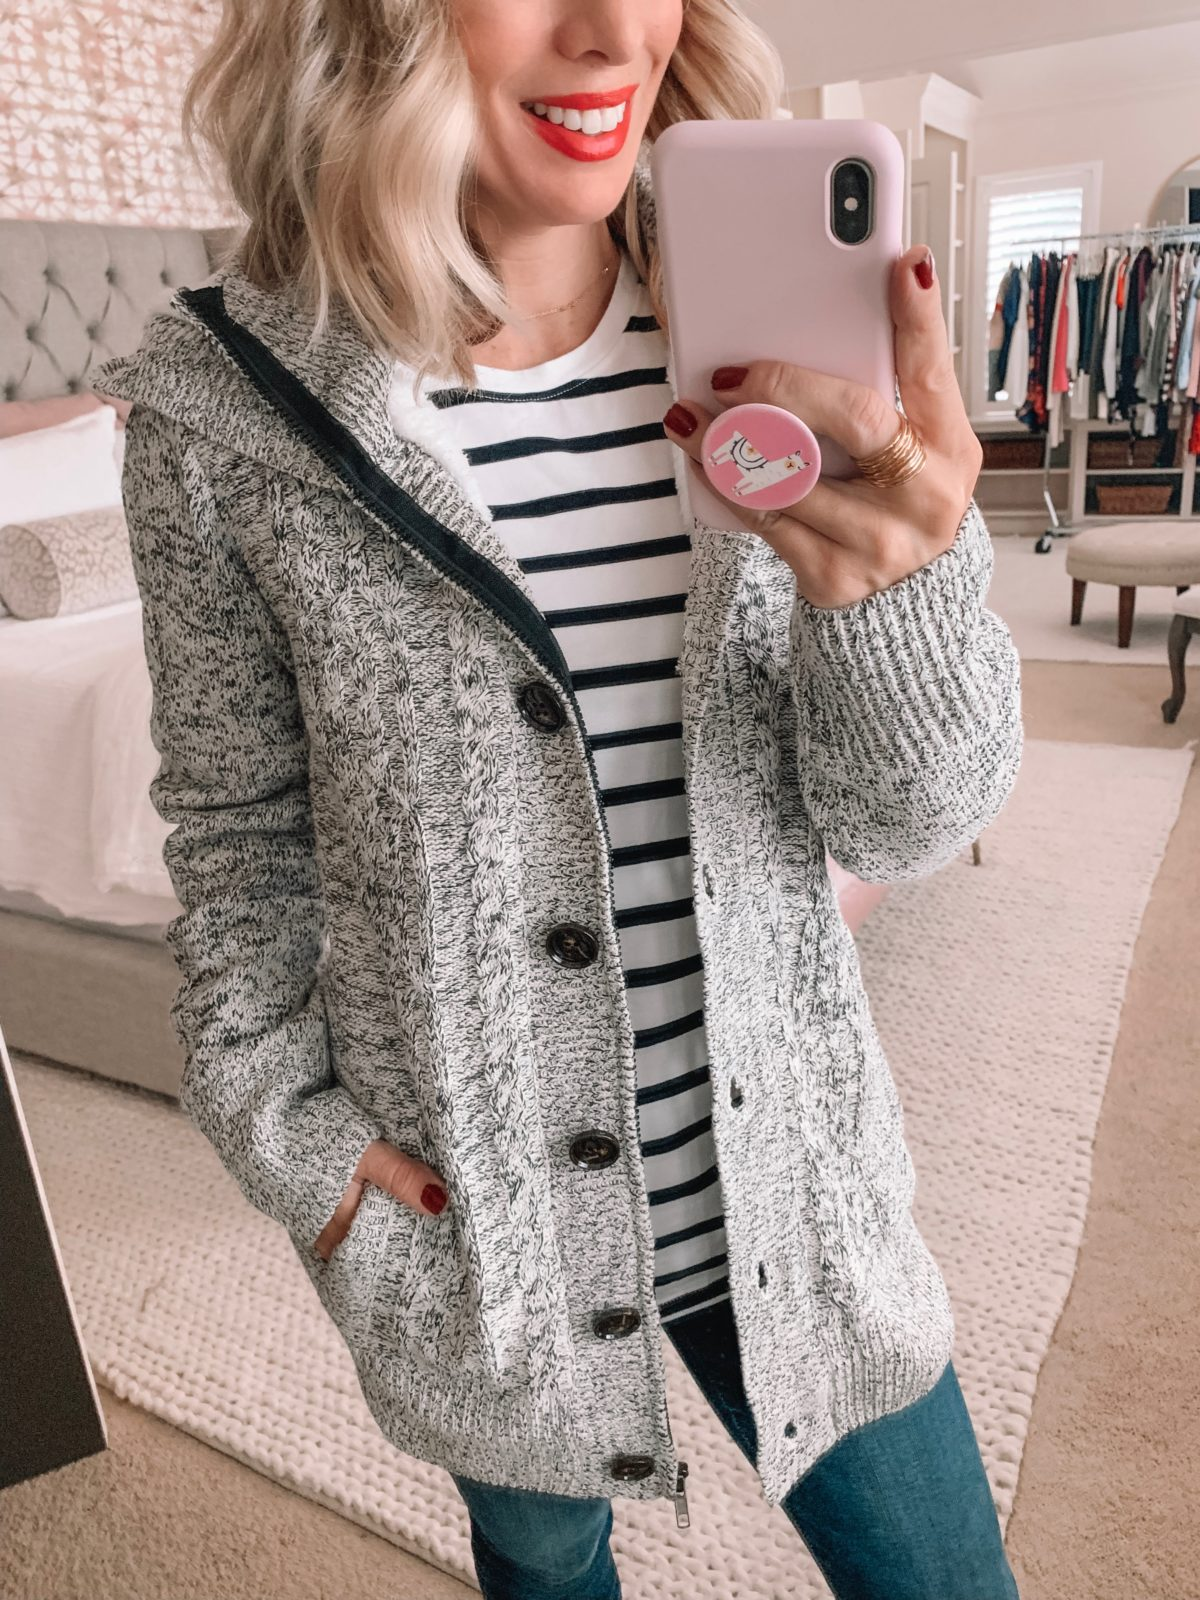 Amazon Prime Fashion- Striped Top and Coat